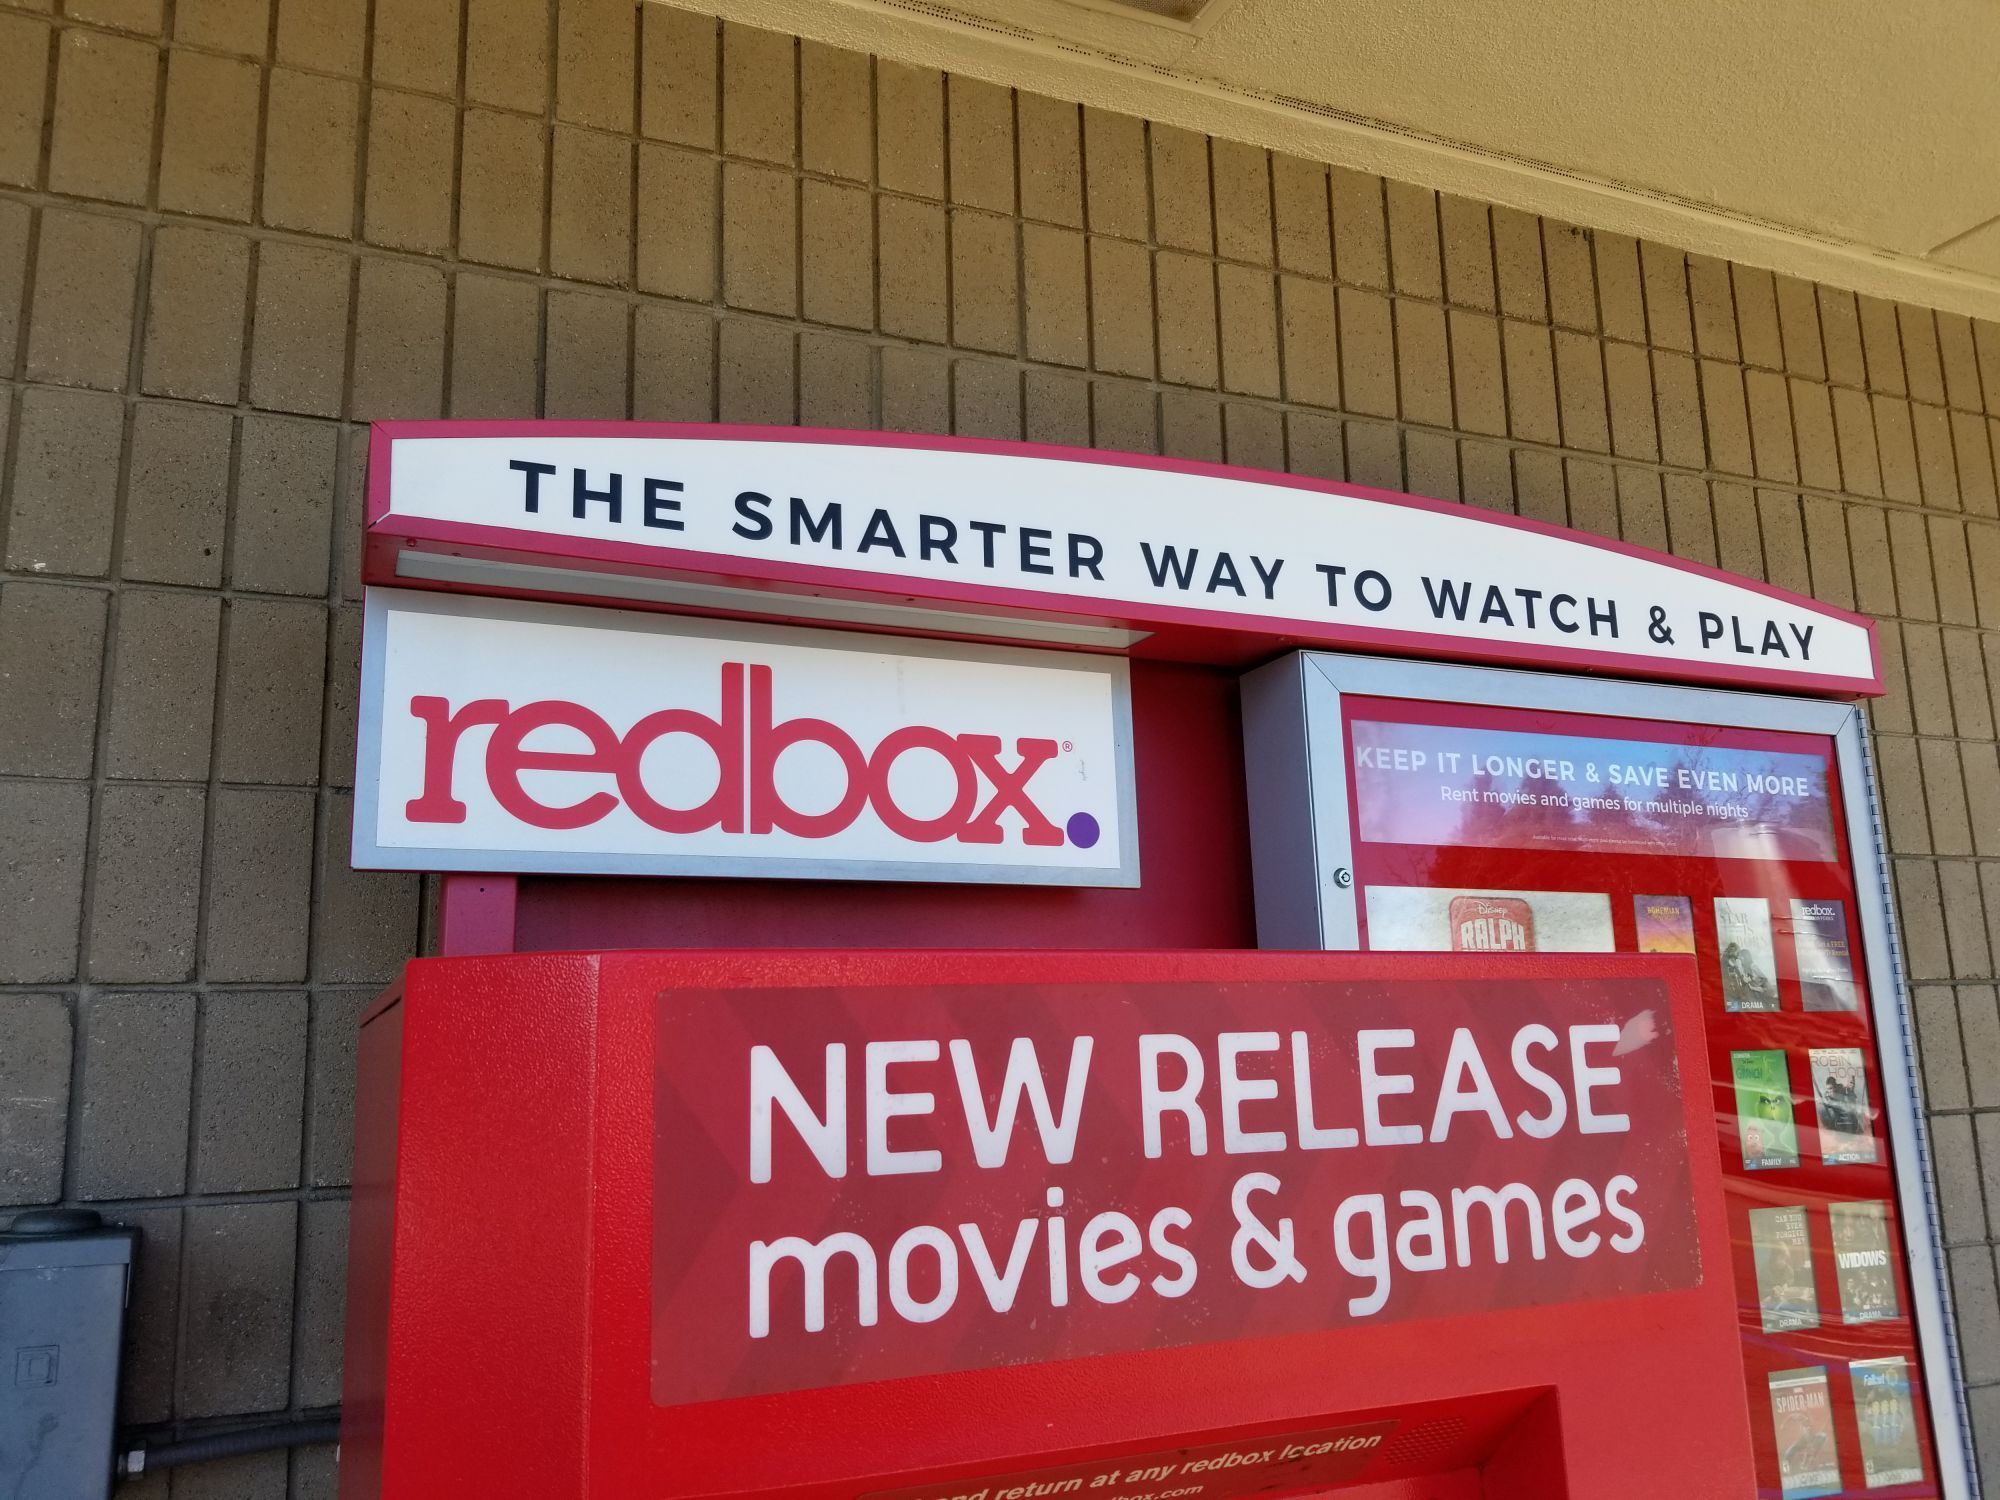 Redbox is selling off its video games at major discounts